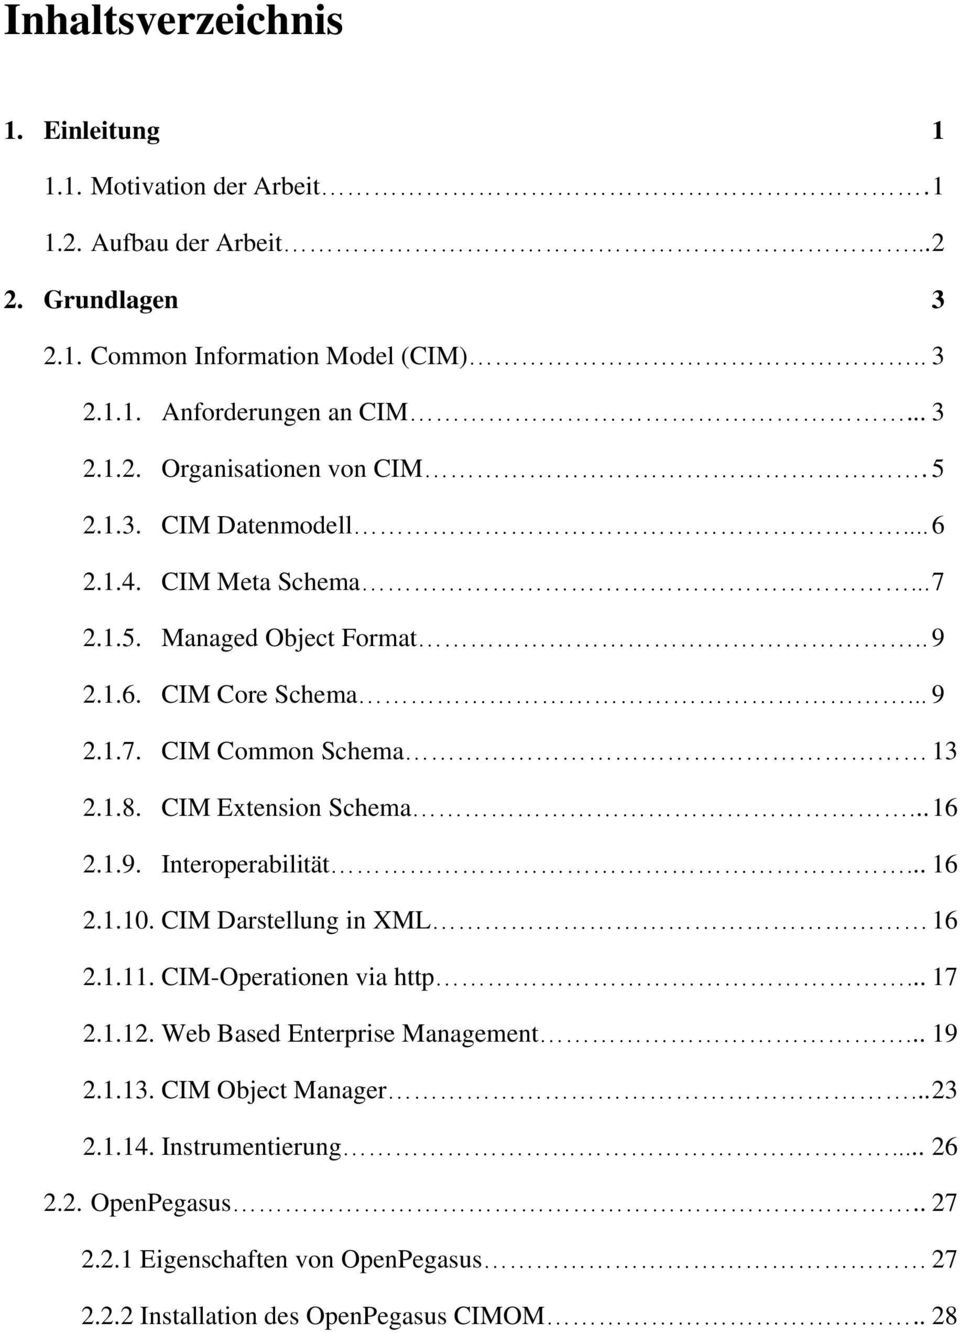 1.8. CIM Extension Schema... 16 2.1.9. Interoperabilität... 16 2.1.10. CIM Darstellung in XML 16 2.1.11. CIM-Operationen via http... 17 2.1.12. Web Based Enterprise Management.